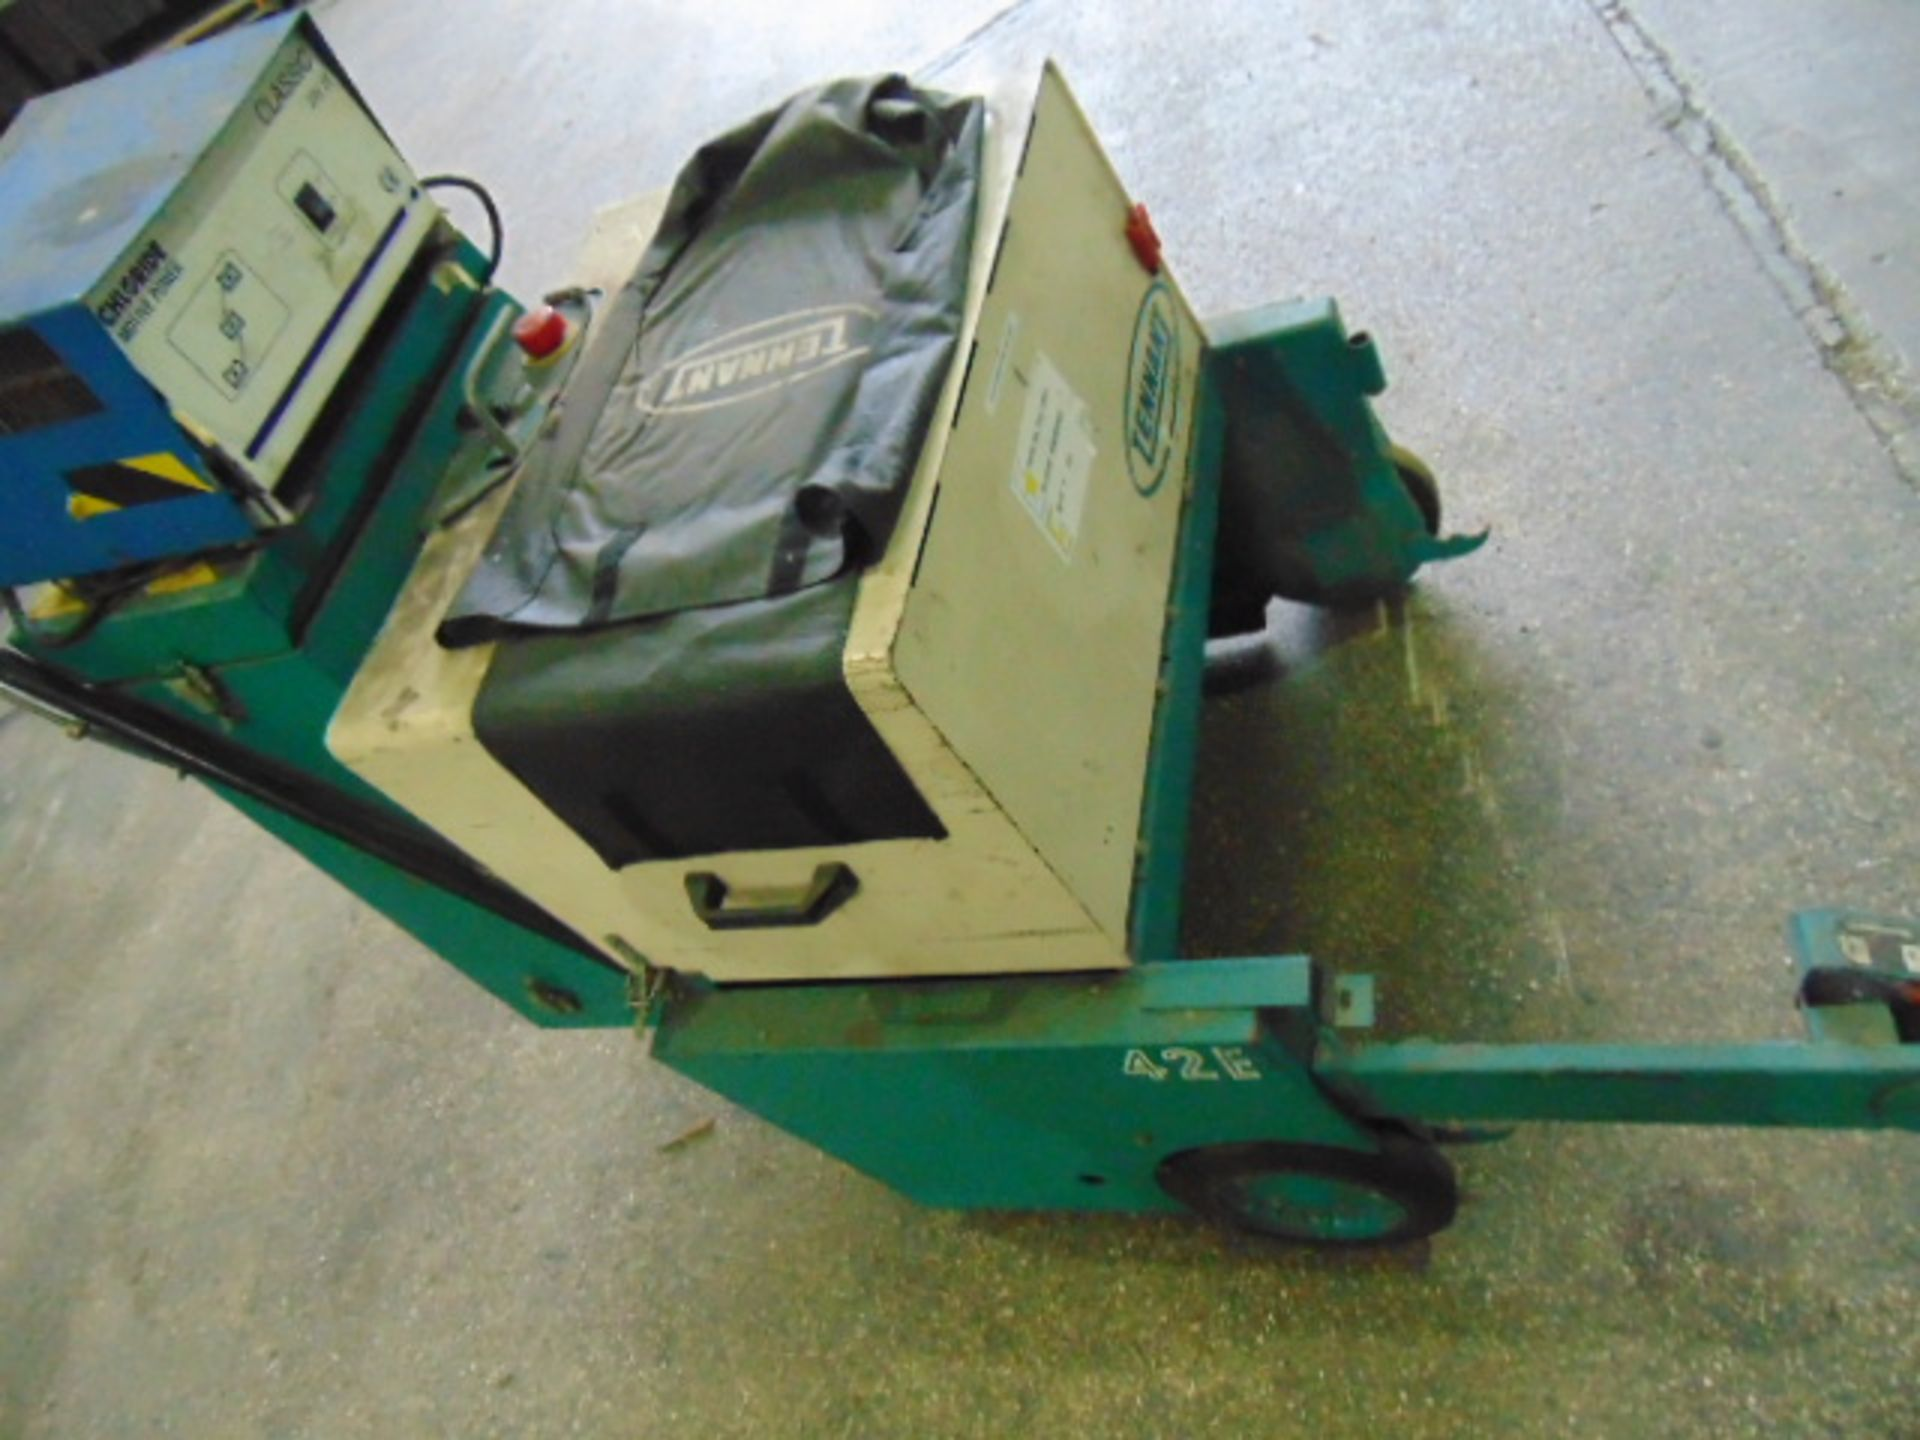 Lot 27334 - Tennant 42E Walk Behind Electric Sweeper C/W Charger